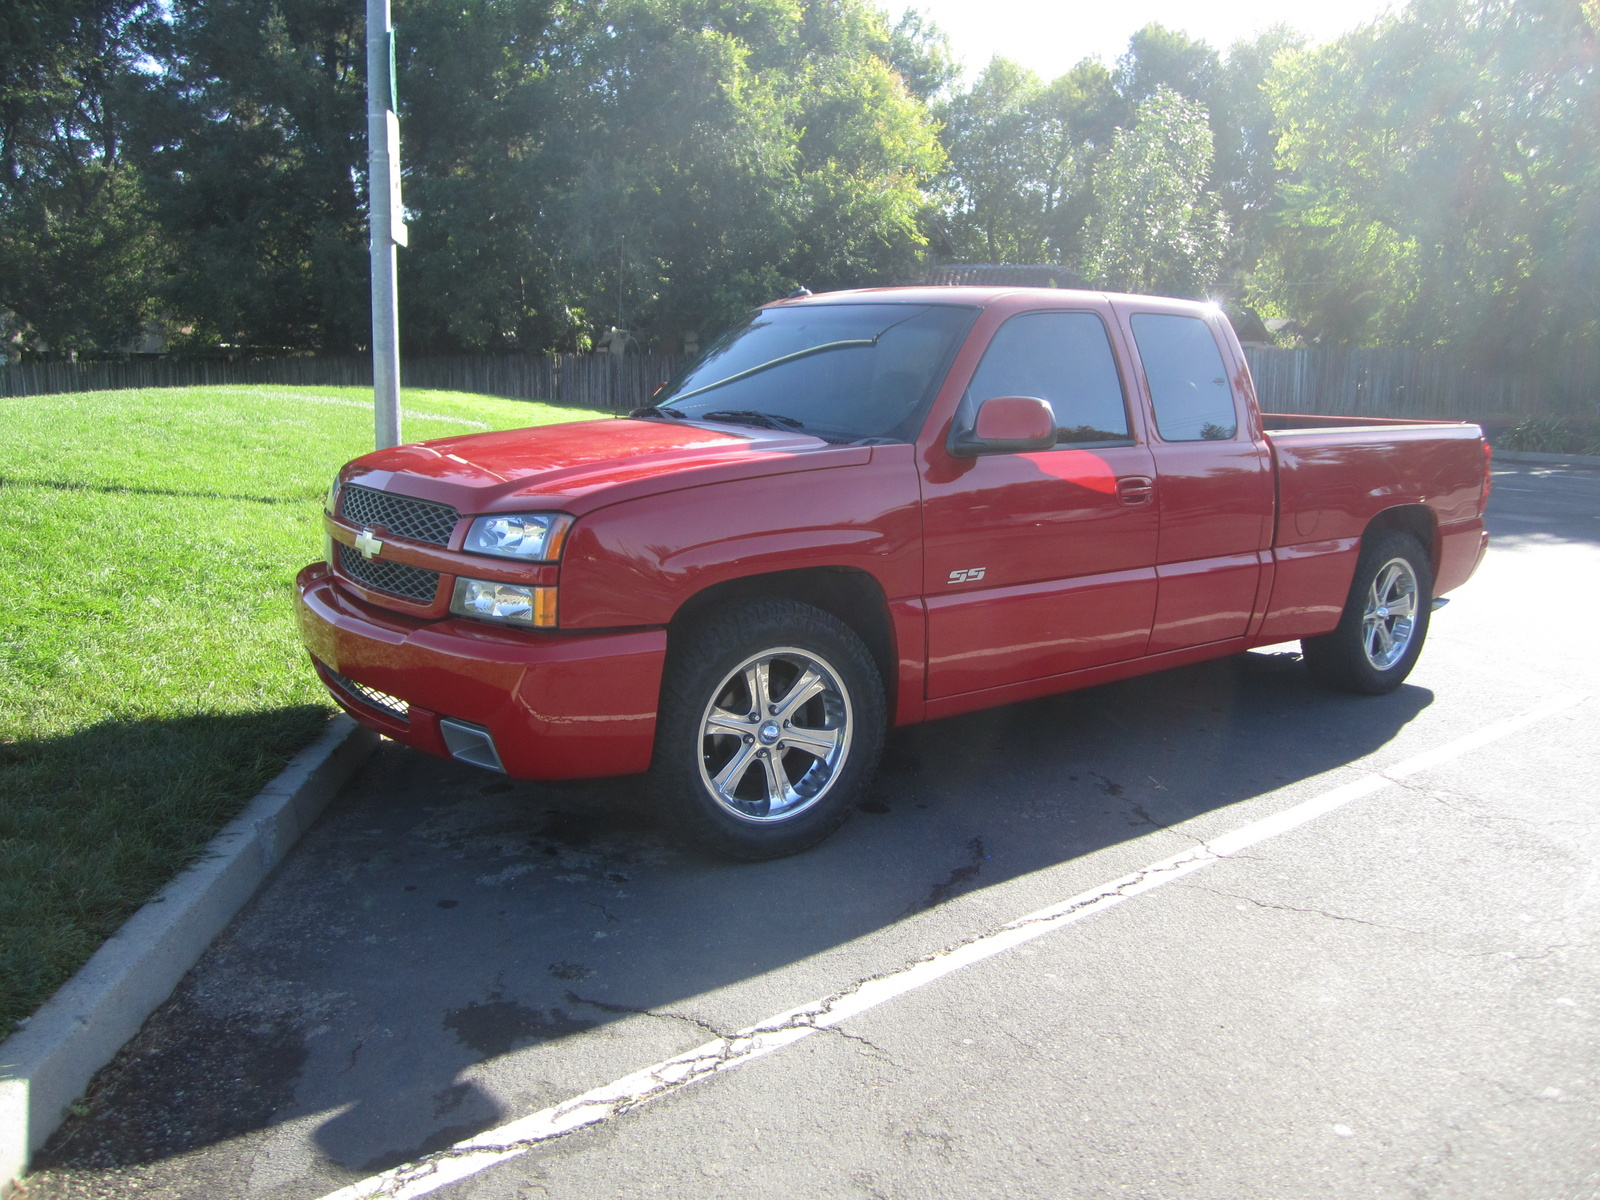 2003 chevy silverado ss specs autos post. Black Bedroom Furniture Sets. Home Design Ideas